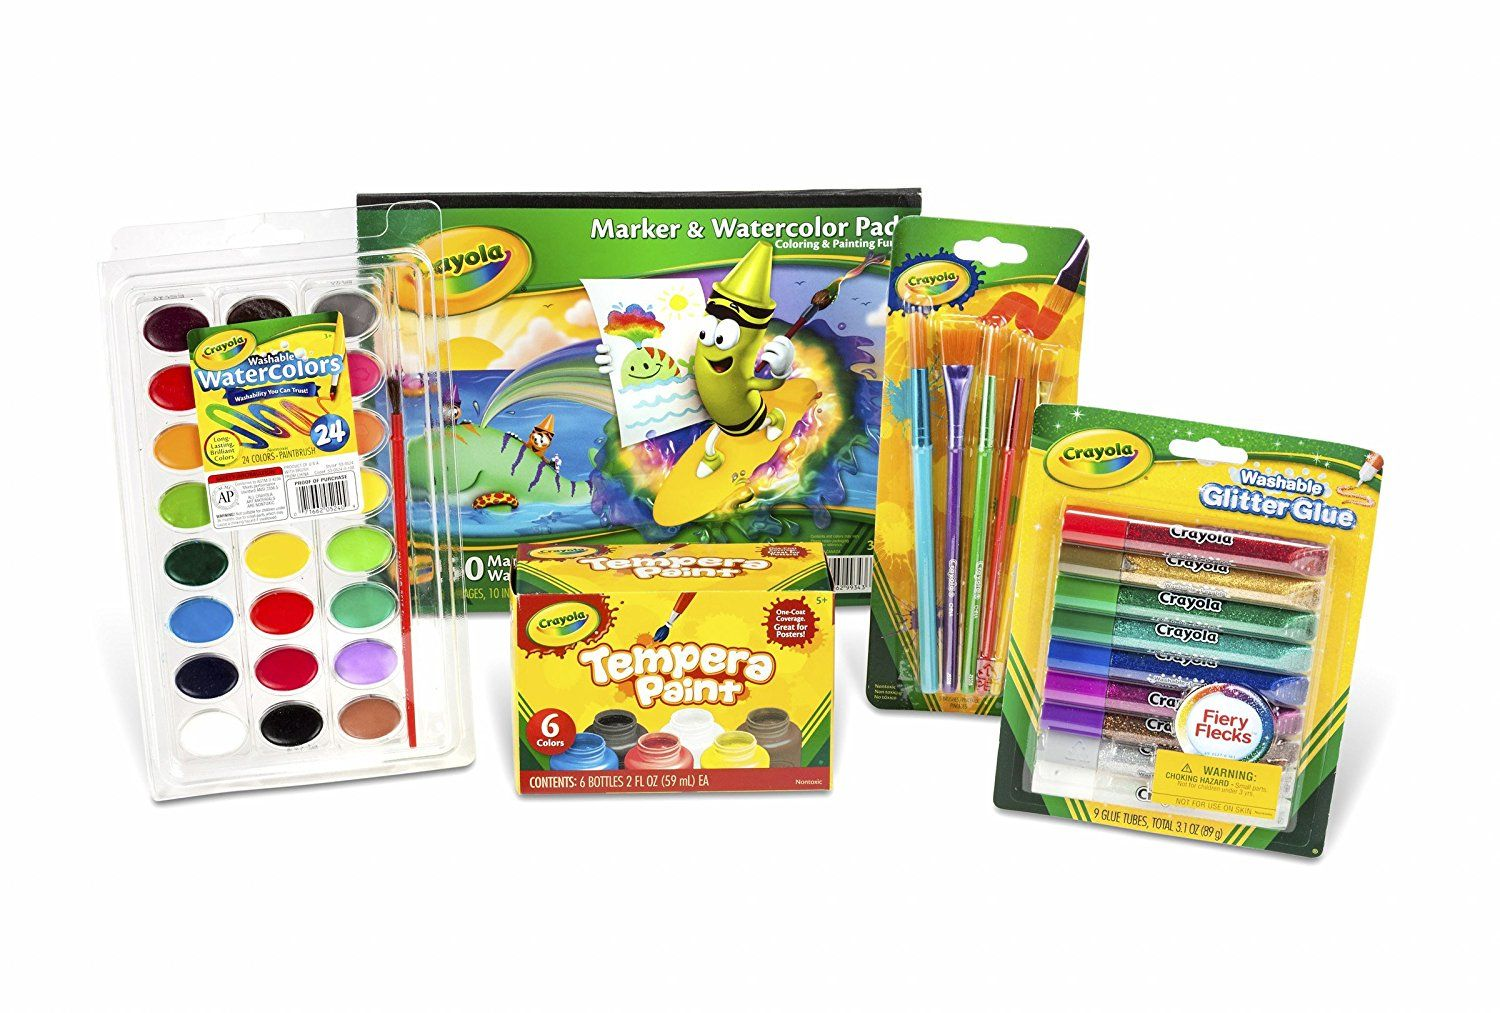 So Much Fun Crayola Kid S Washable Paint And Craft Set That